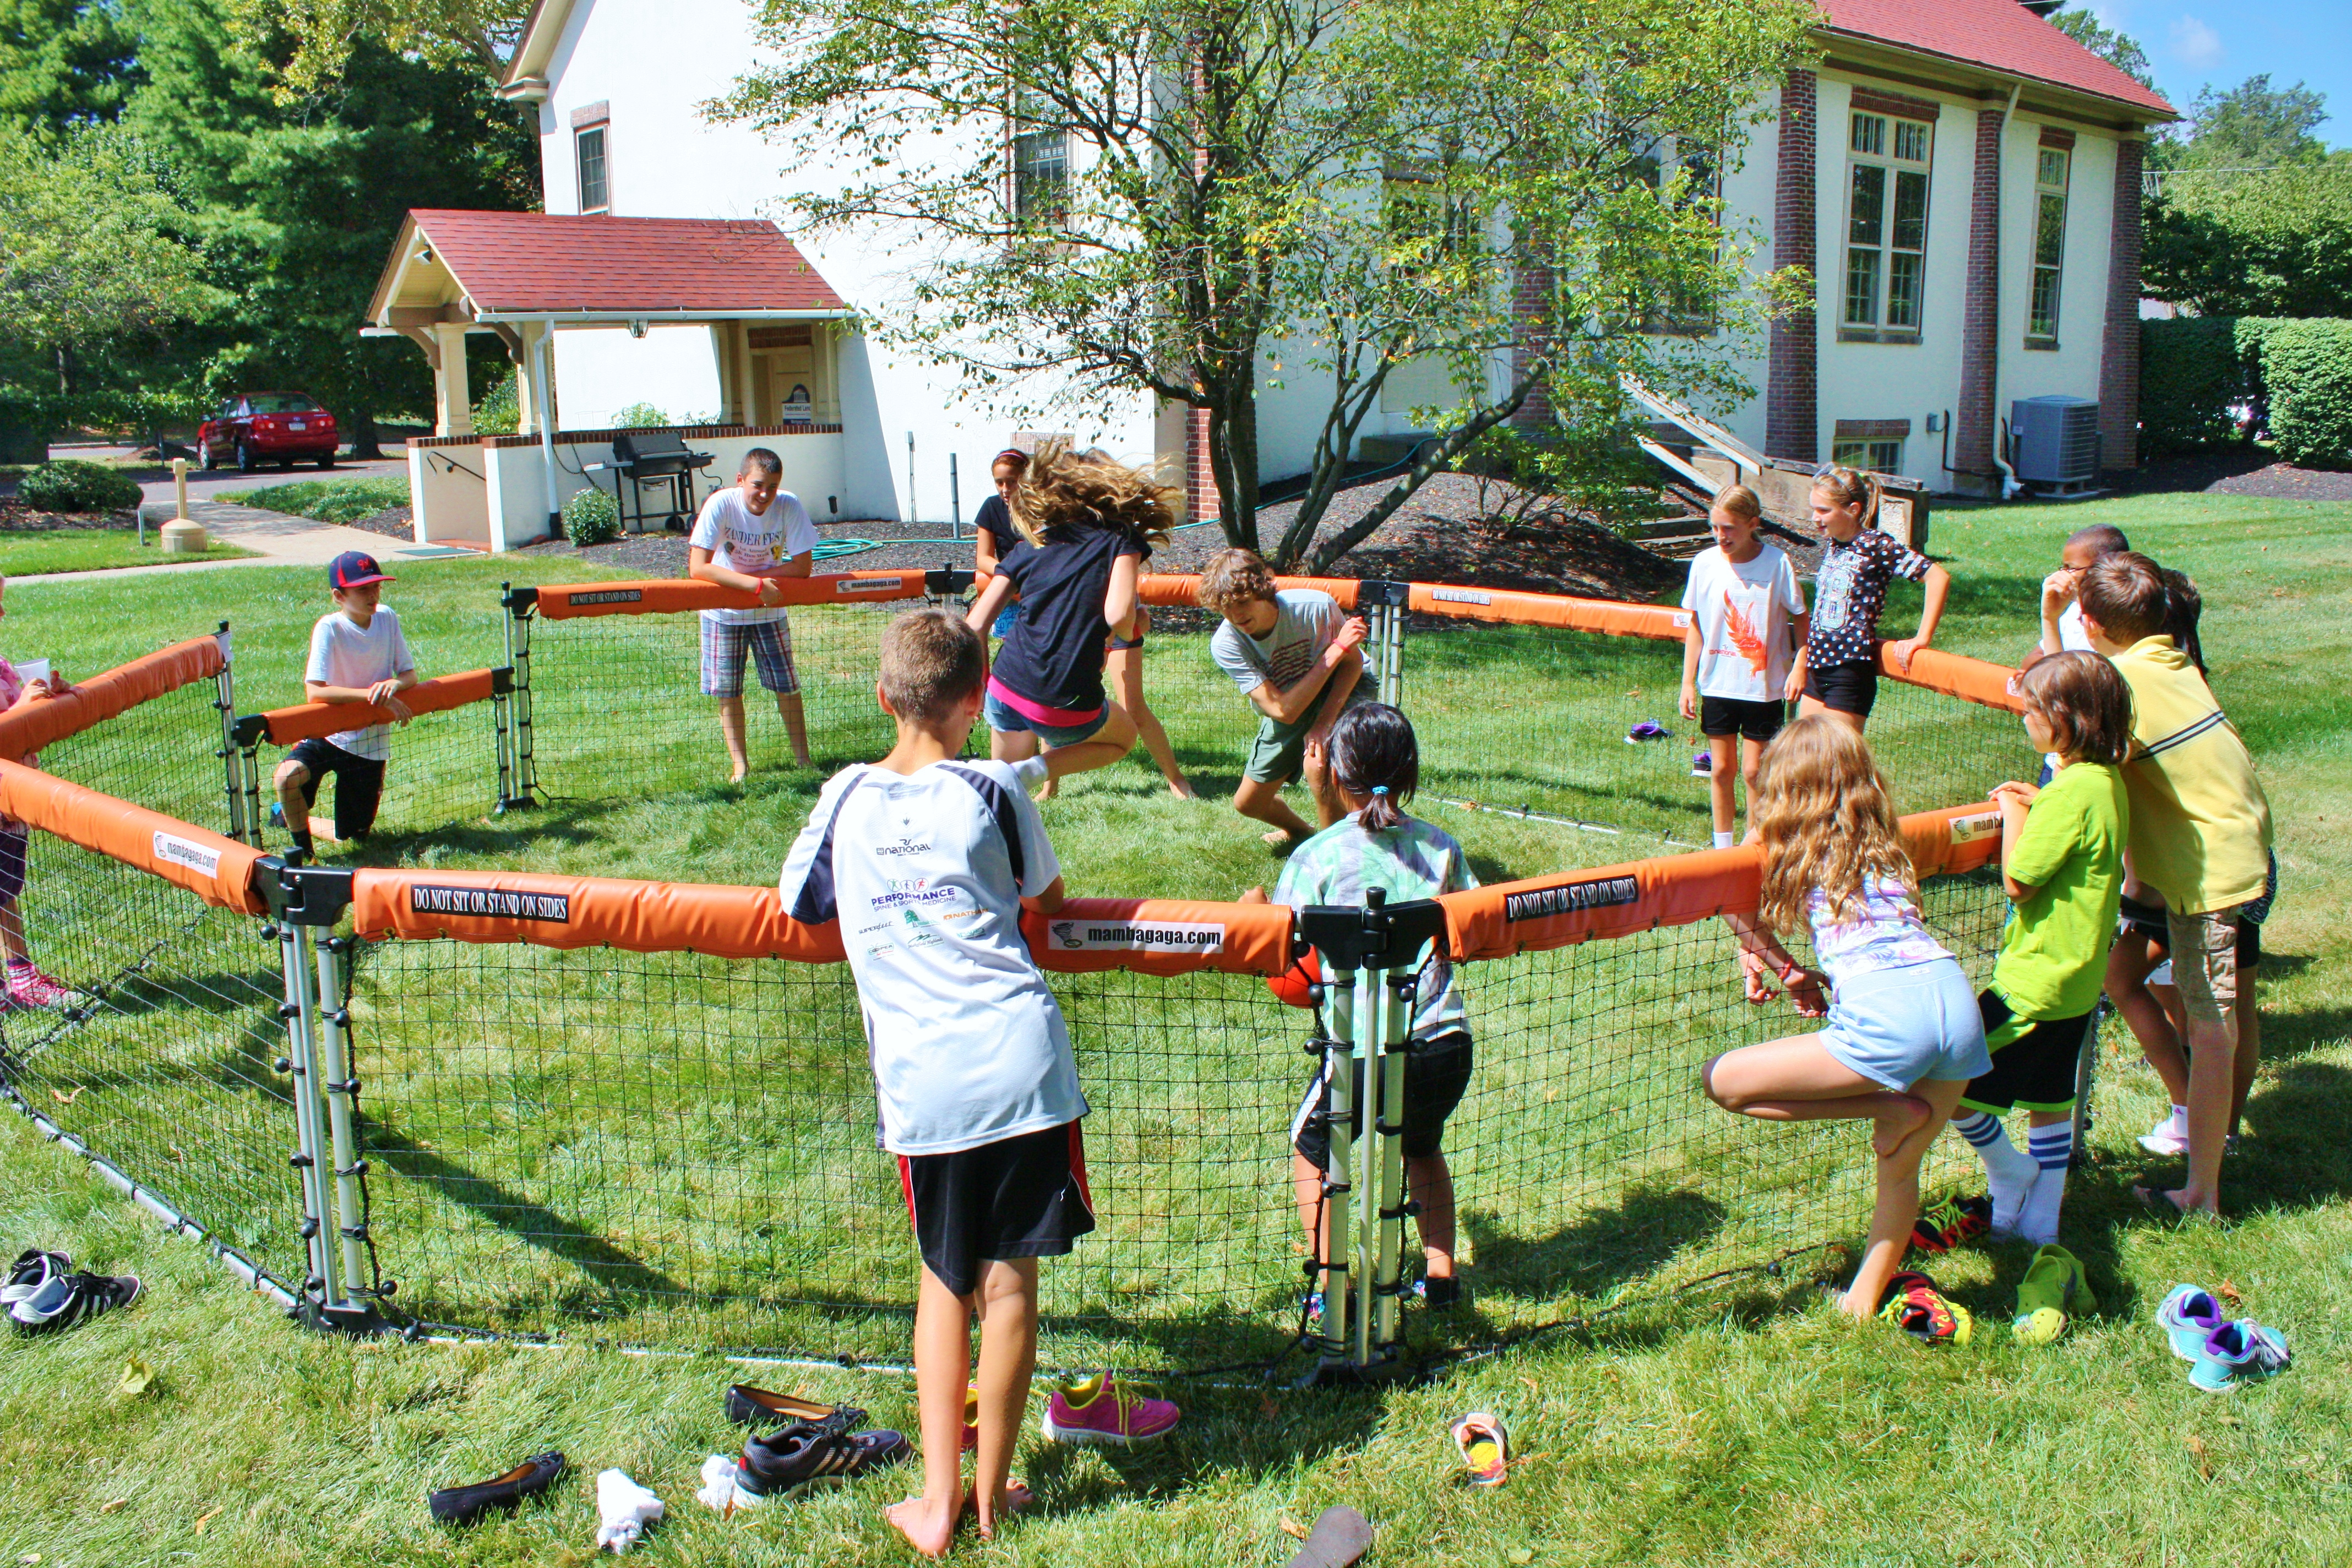 GaGa Pit with church youth group